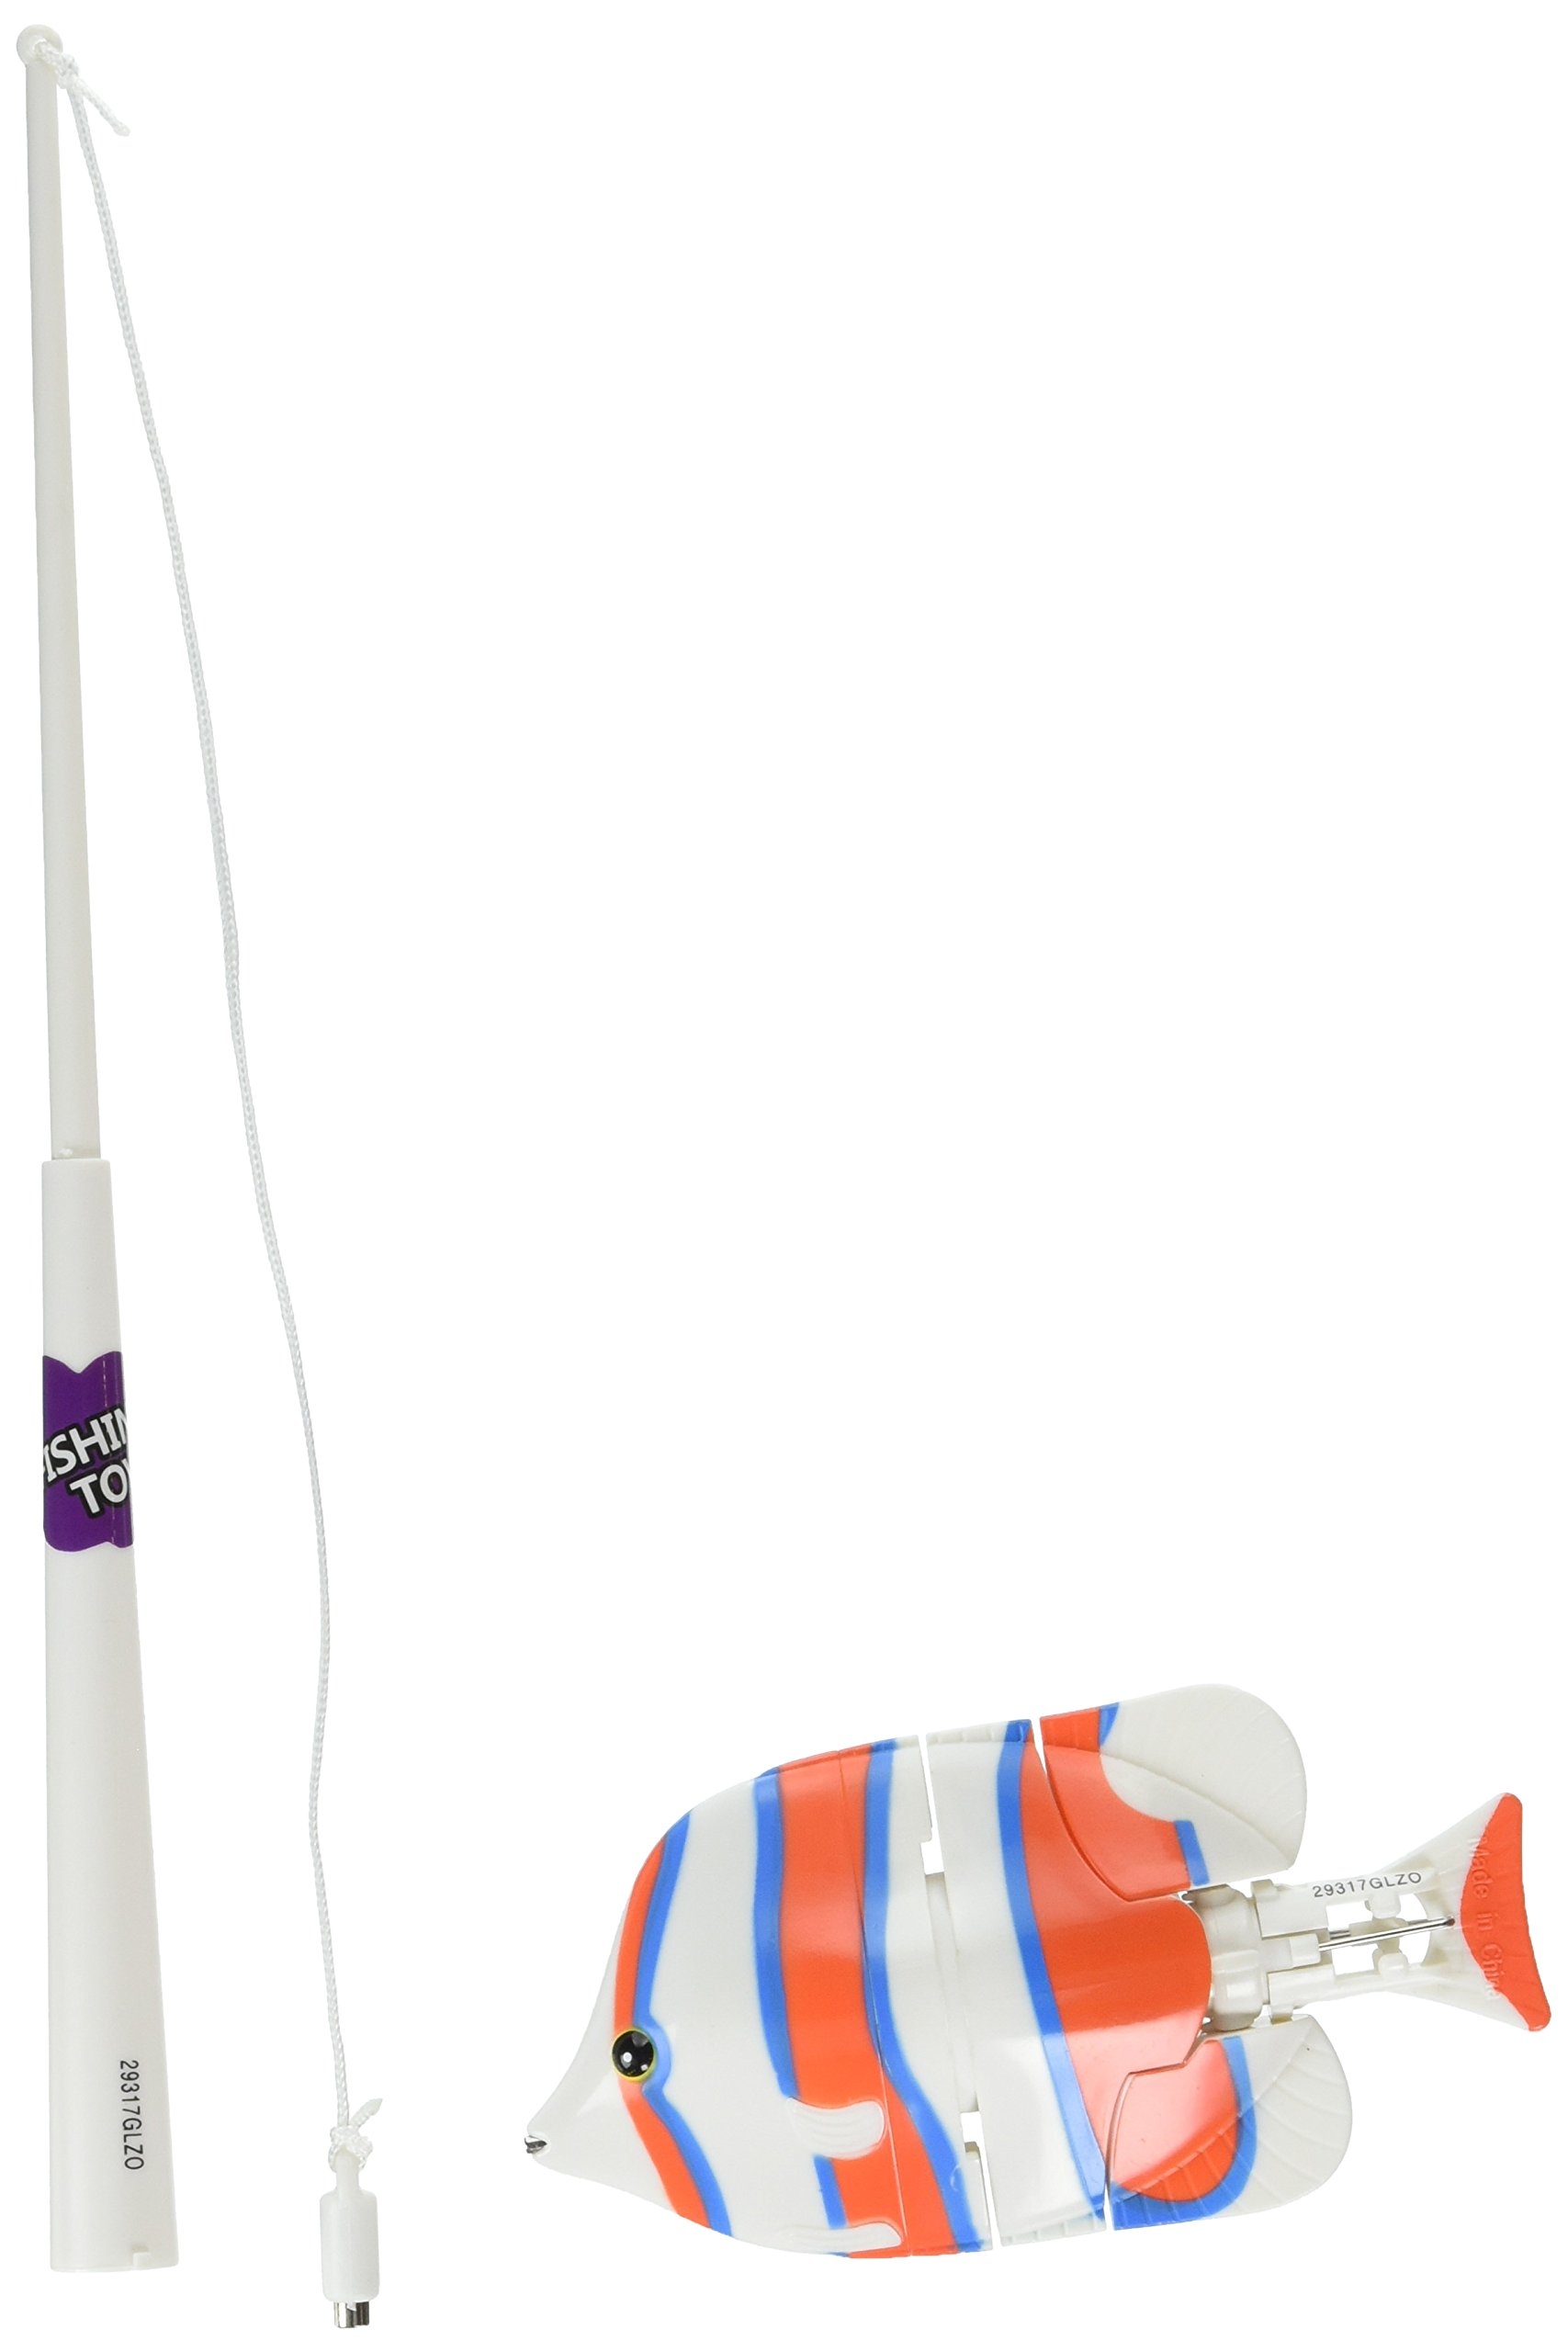 Aqua Swimming Fish Catch Game Pool Toy, Orange/White, Ages 5 and up